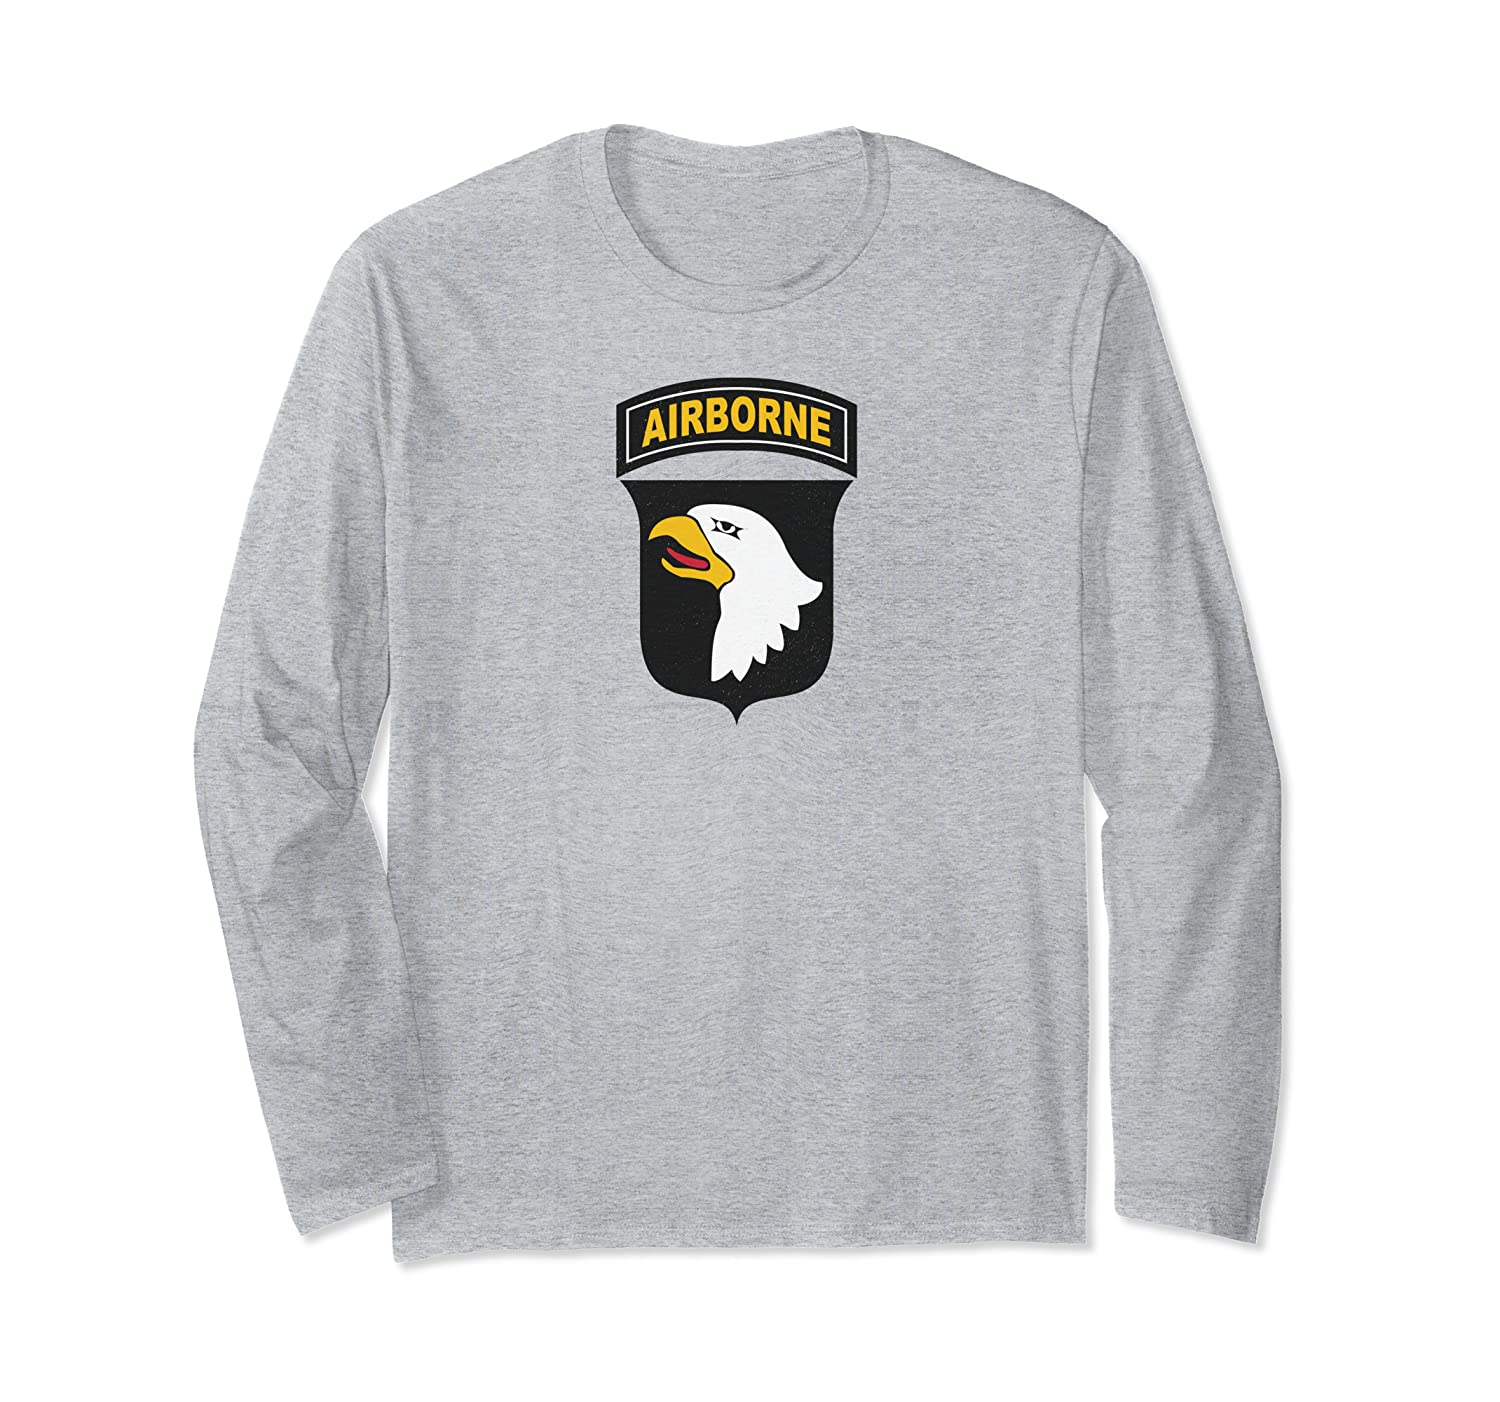 101st Airborne Division Vintage Army Fort Campbell Veteran Long Sleeve T-Shirt